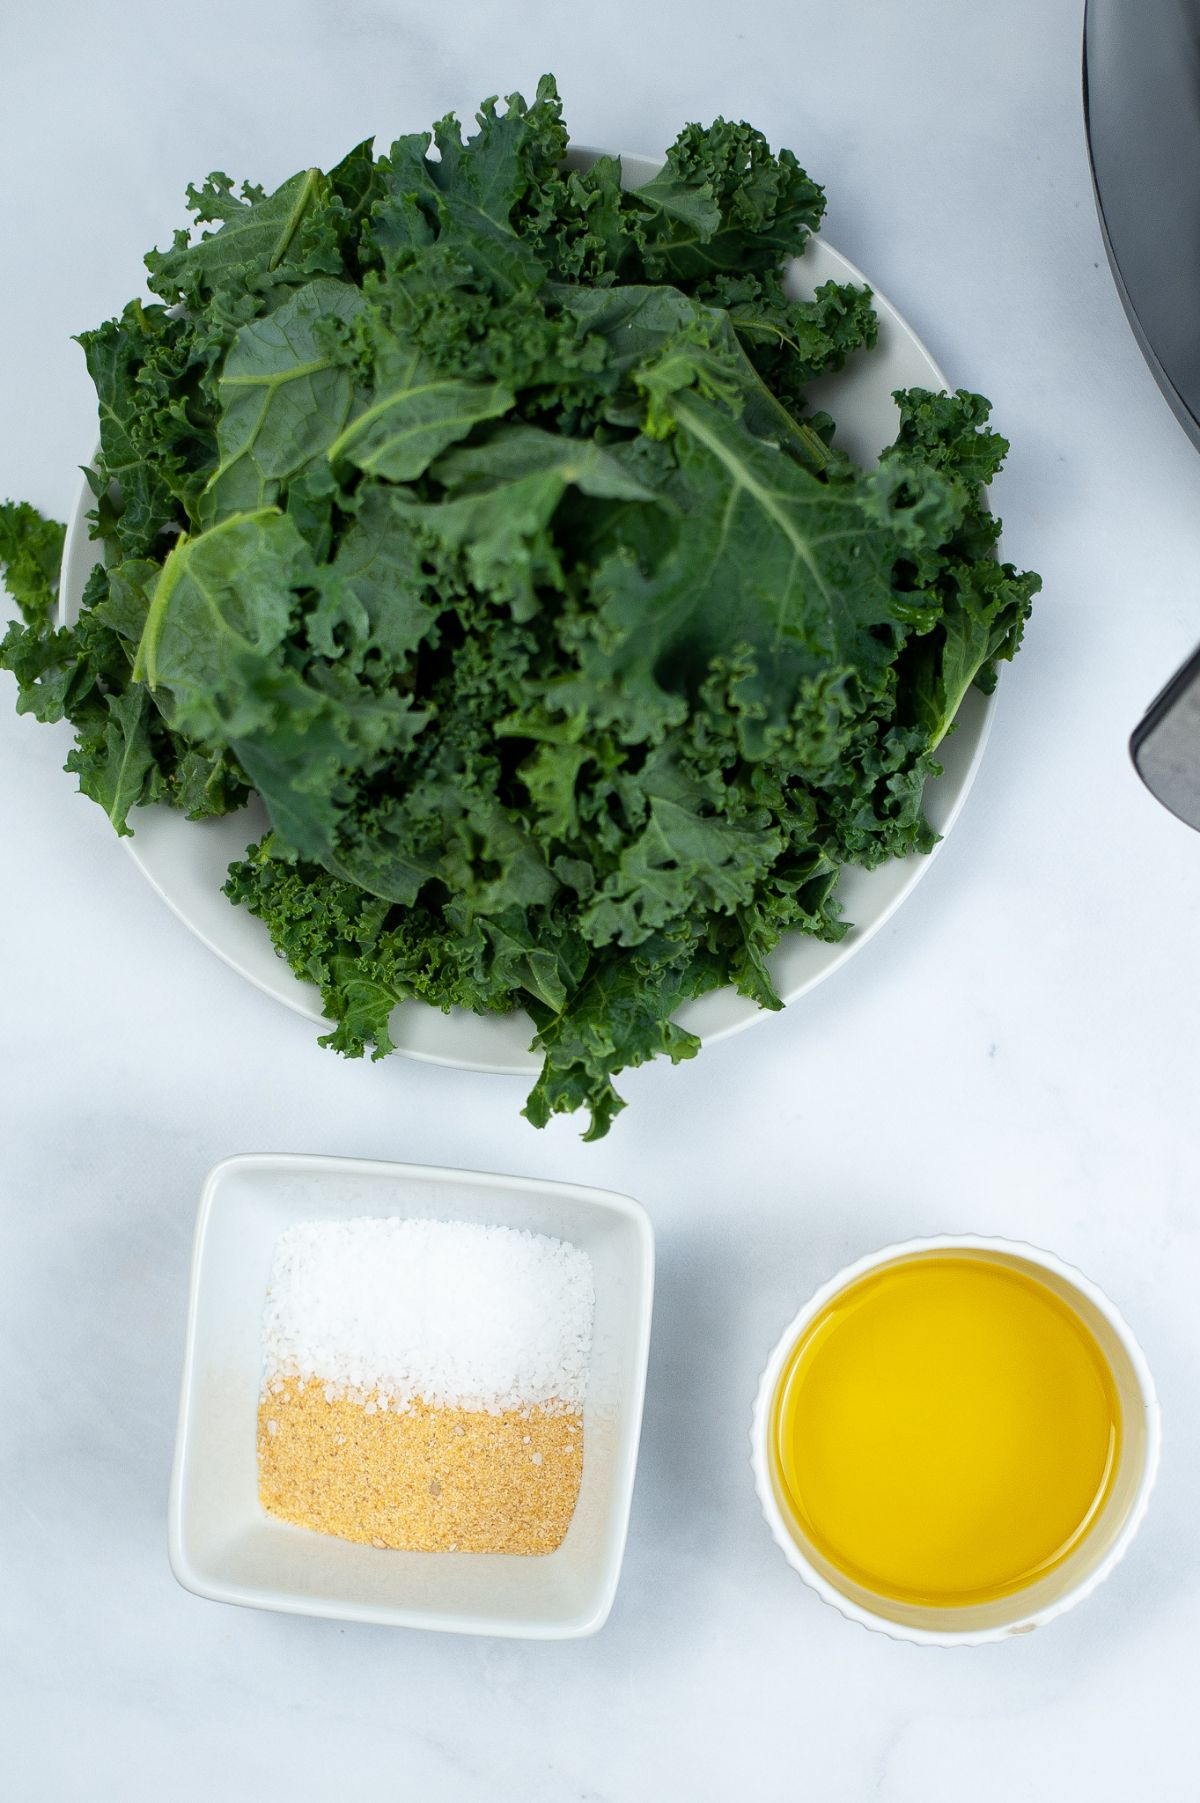 A bunch of Kale stalks in a bowl with other ingredients: garlic powder kosher salt and oil in a saucer and small bowl.